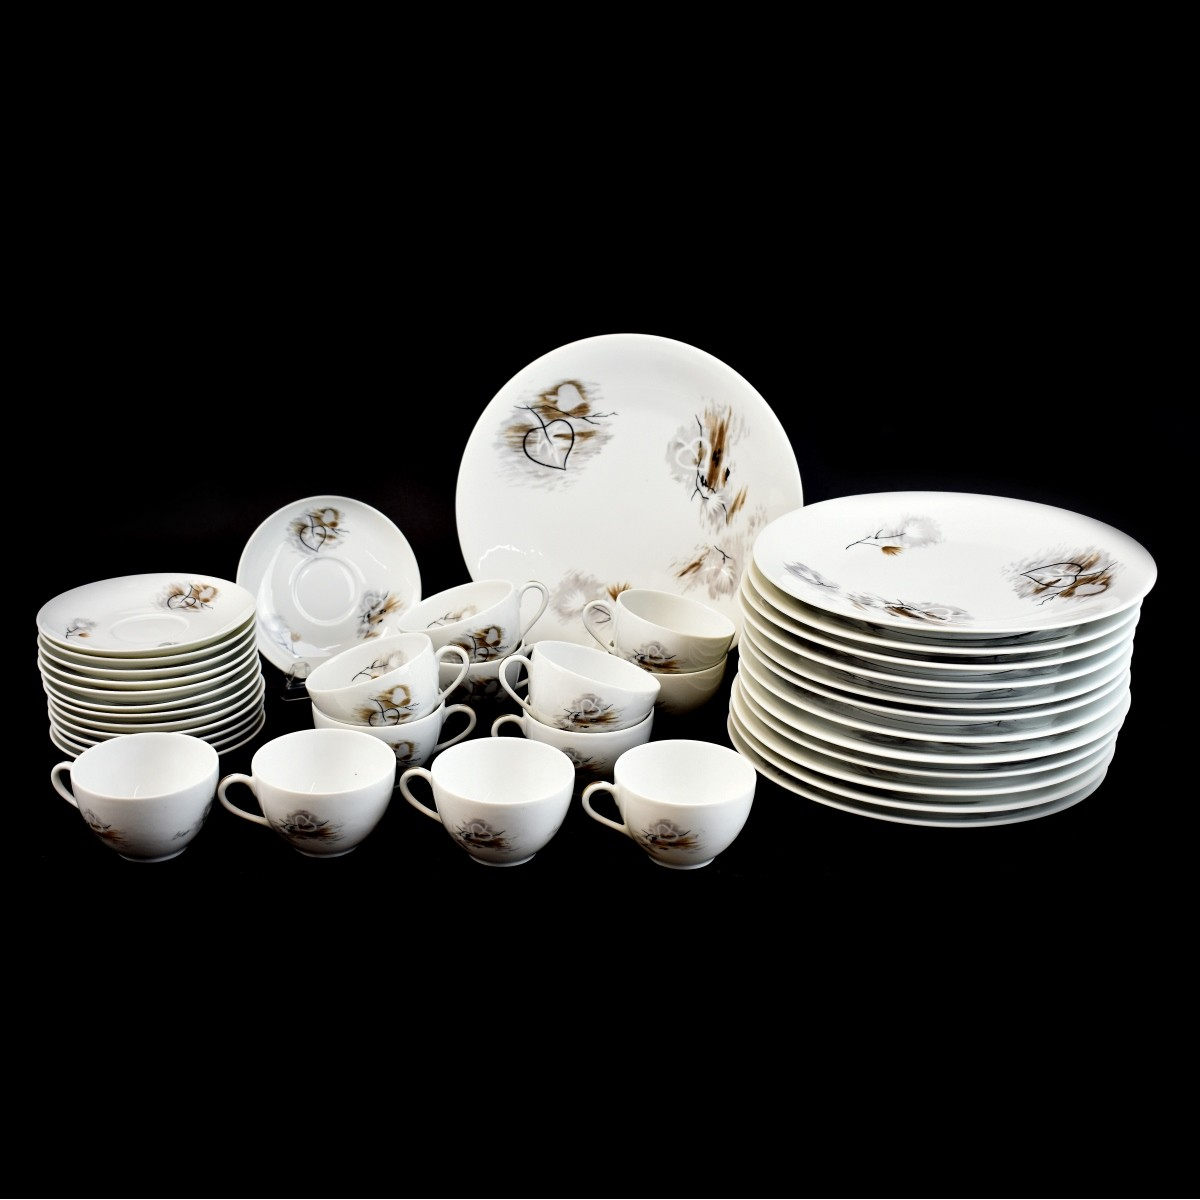 Raynaud & Co Limoges Partial Dinner Service